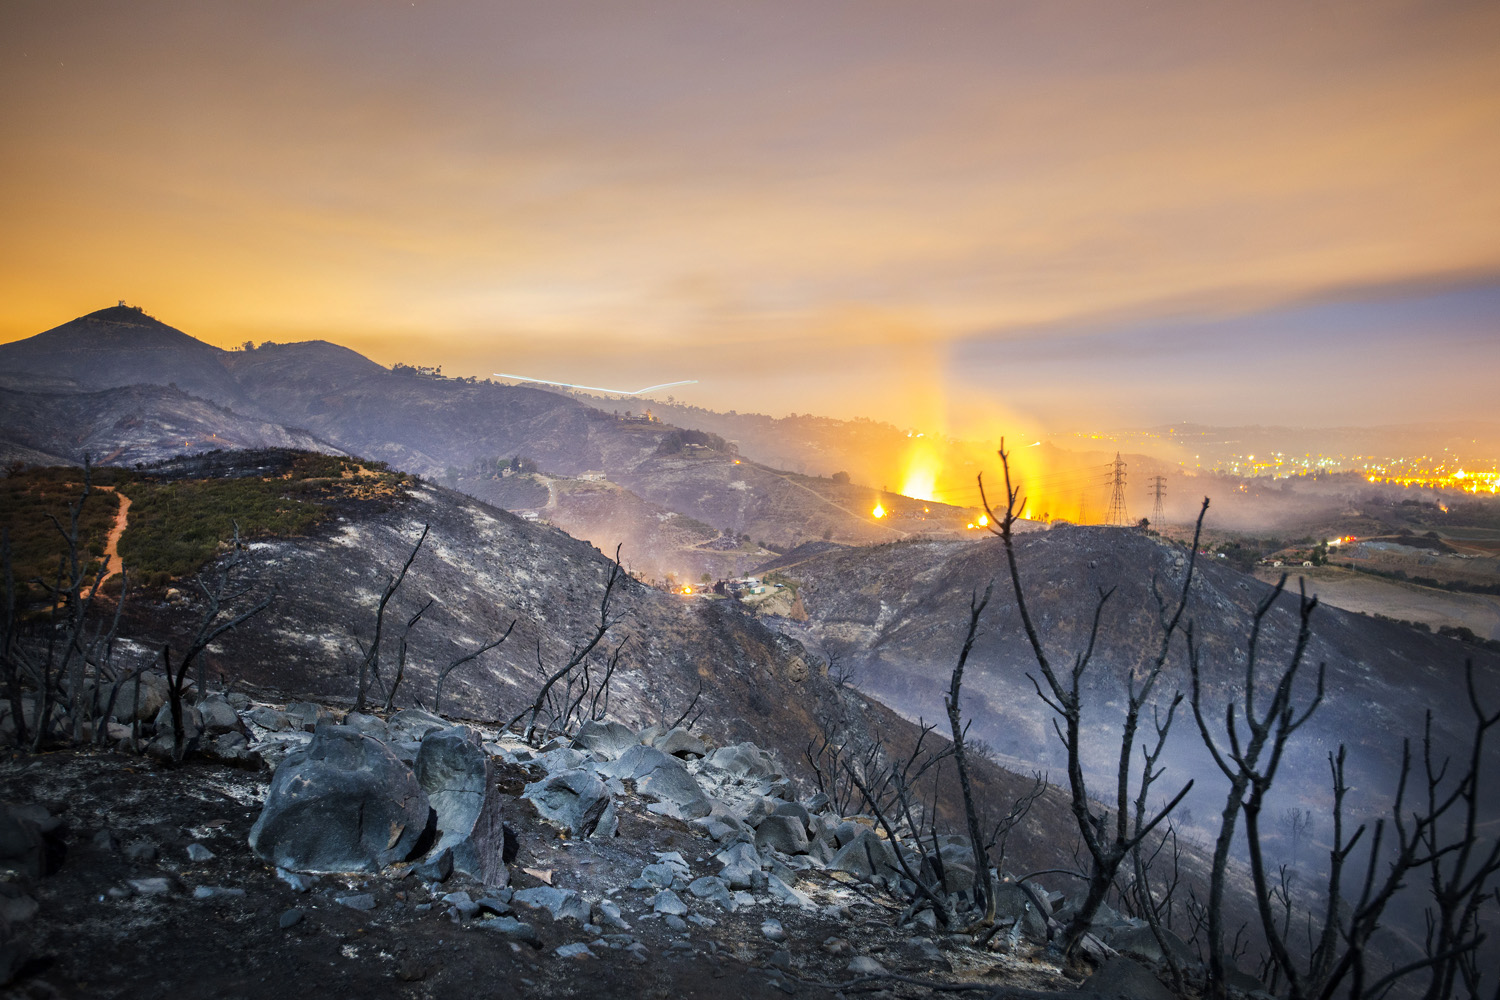 A long exposure shows smoldering remains of overnight fires on the hillsides of San Marcos, San Diego county, Calif., USA, early May 16, 2014.